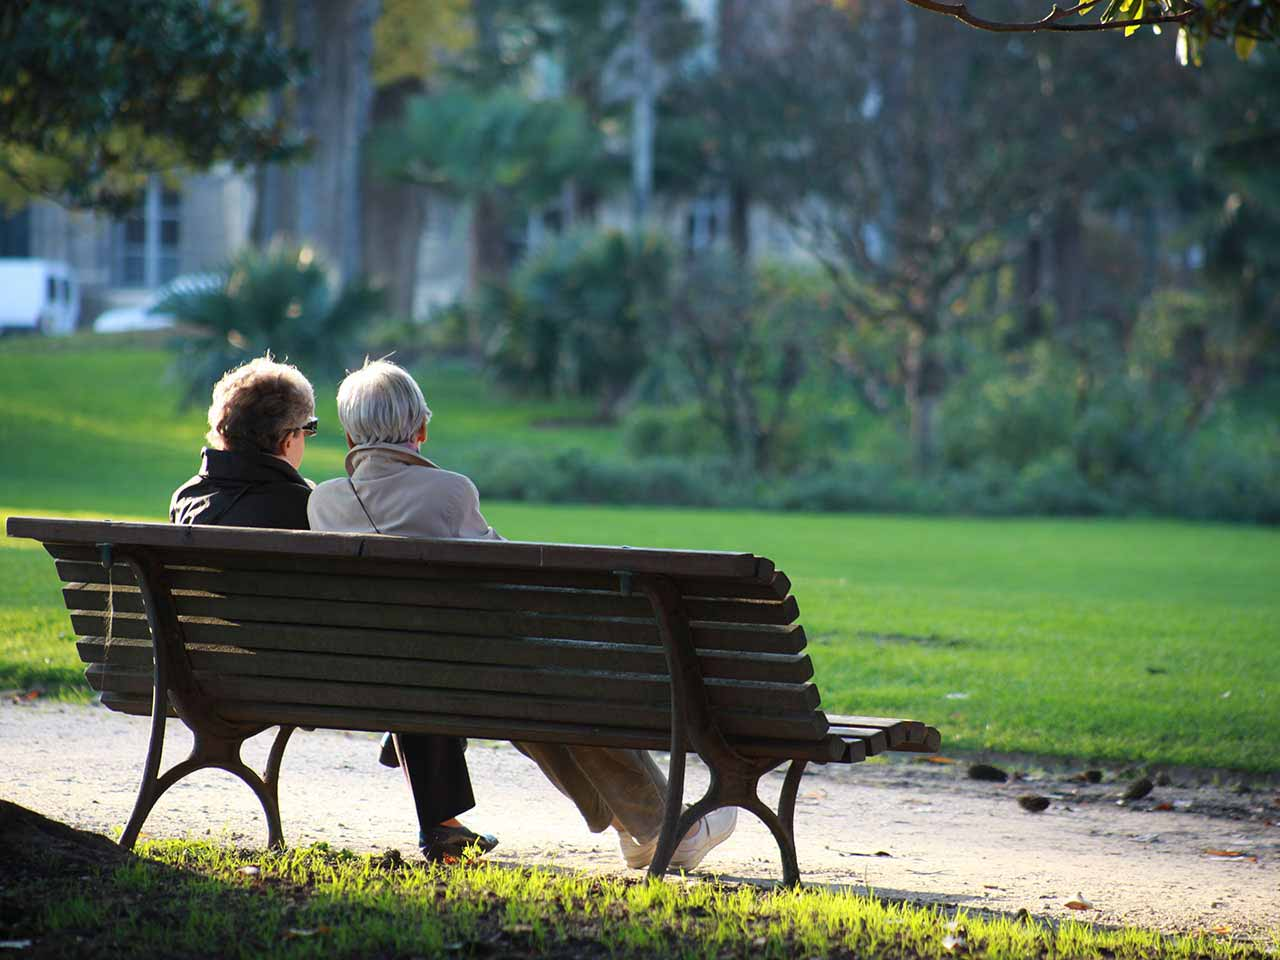 Two mature women sitting on park bench